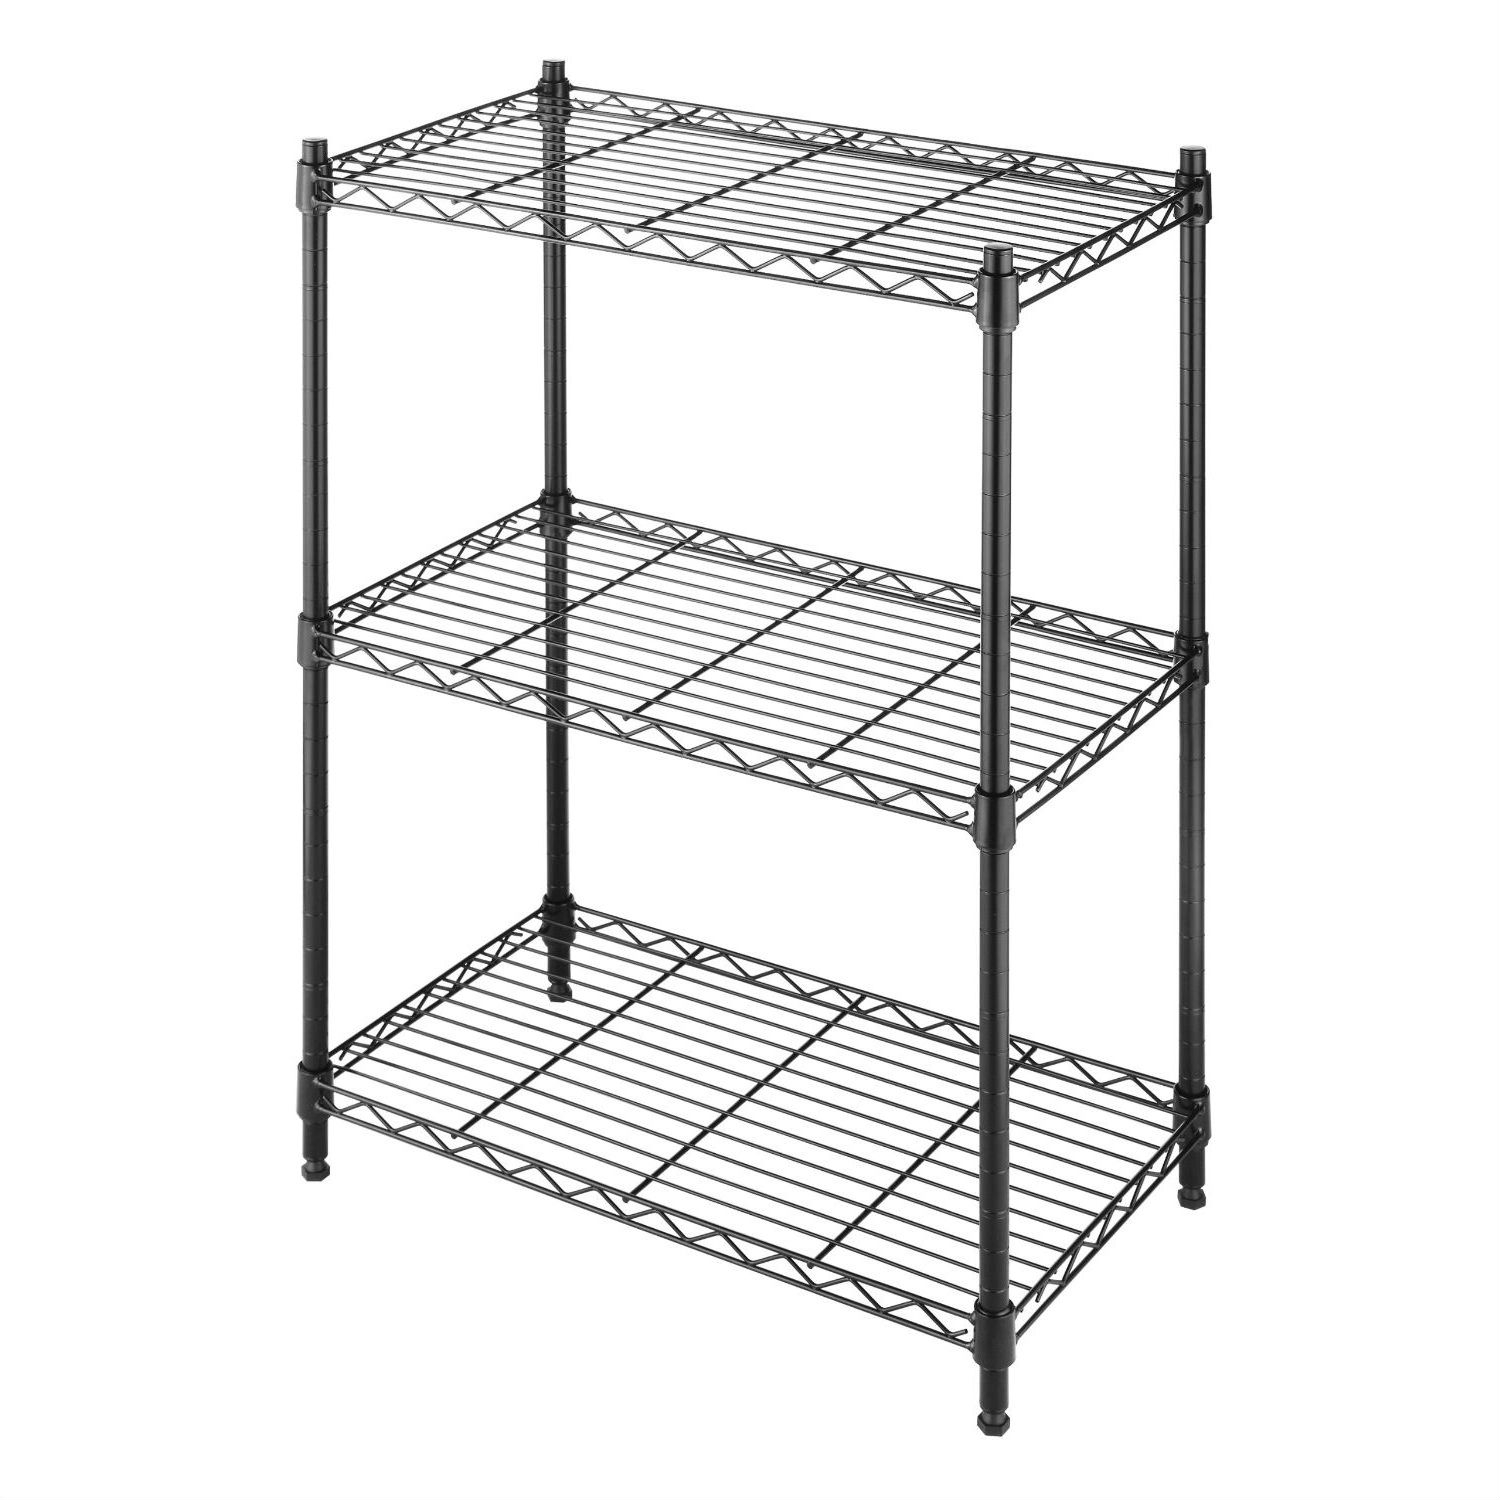 Small 3 Shelf Storage Rack Shelving Unit in Black Metal with Adjustable Leveling Feet